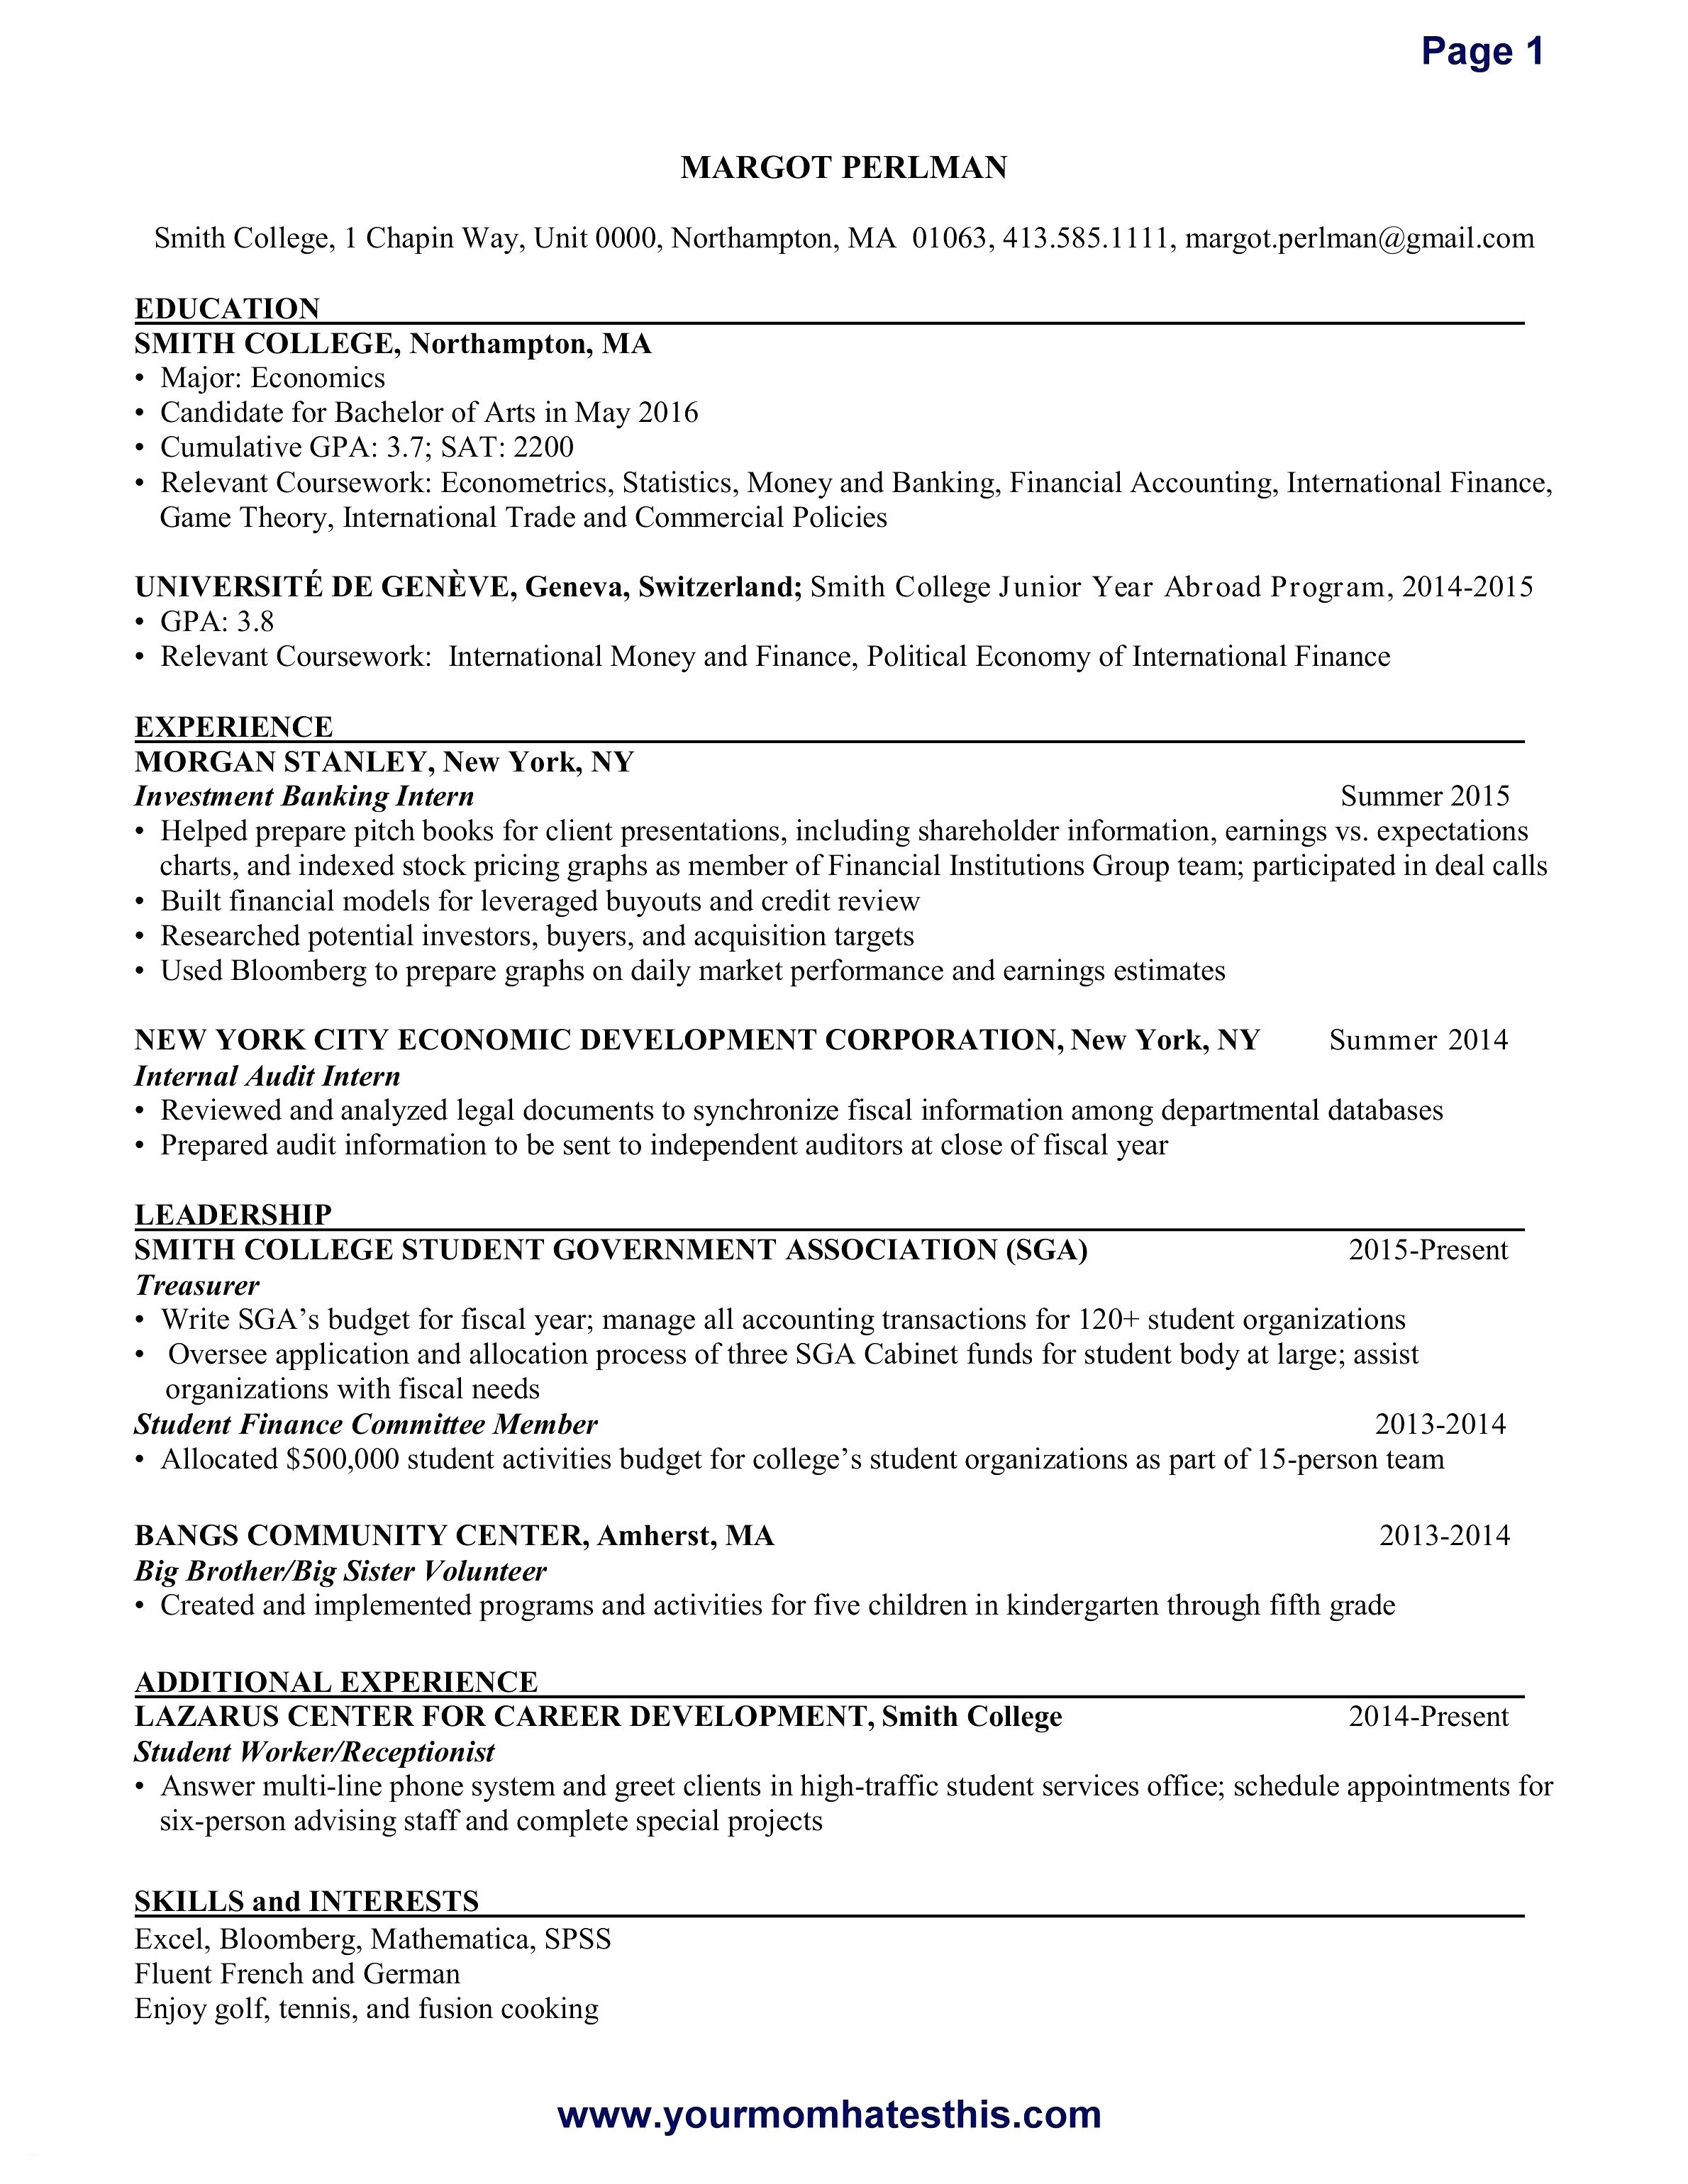 Security Guard Resume - Awesome Security Ficer Resume Sample